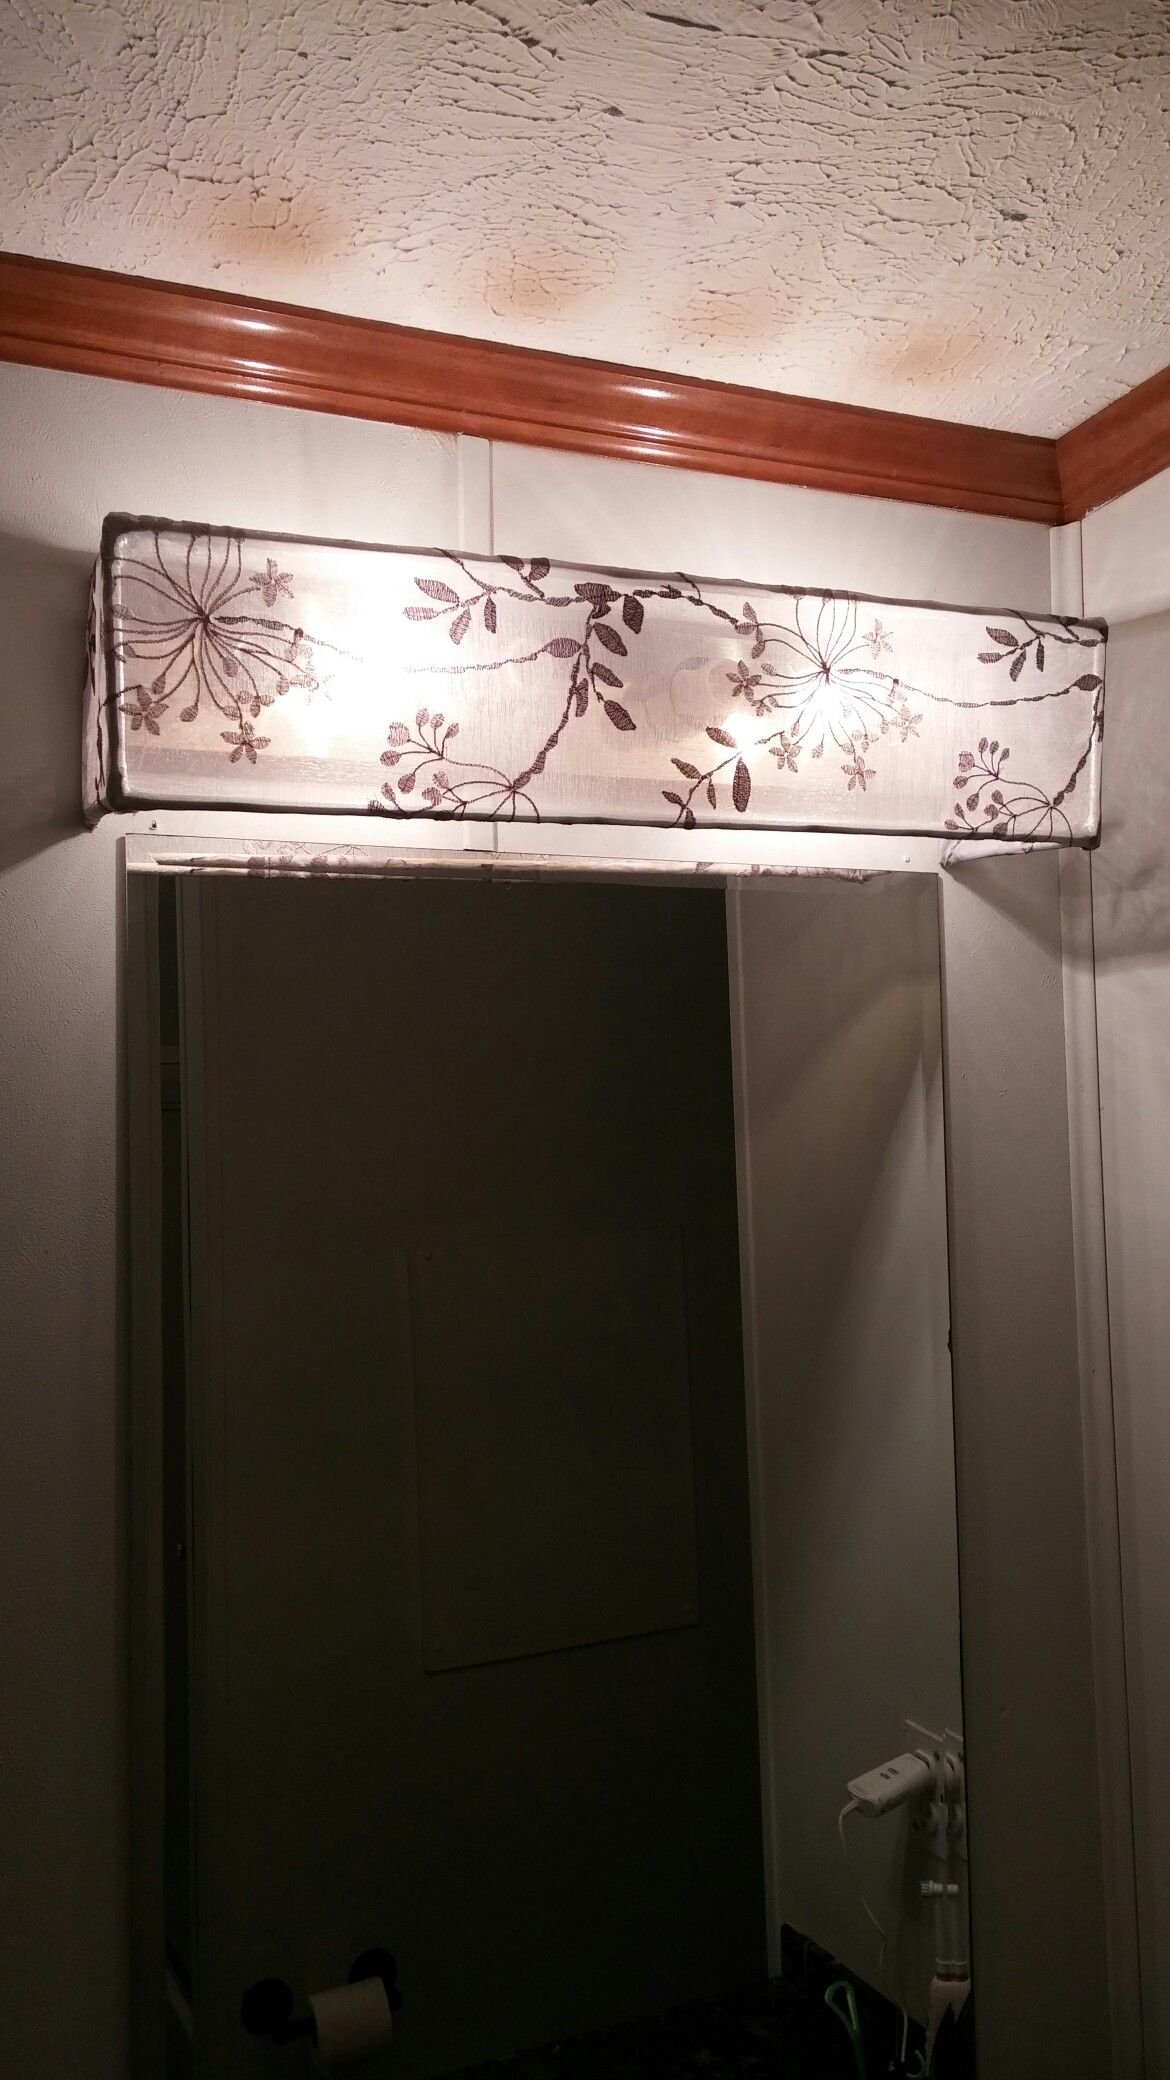 Diy Vanity Light Shade Dowel Rods And A Curtain Sheer Hot throughout measurements 1170 X 2080